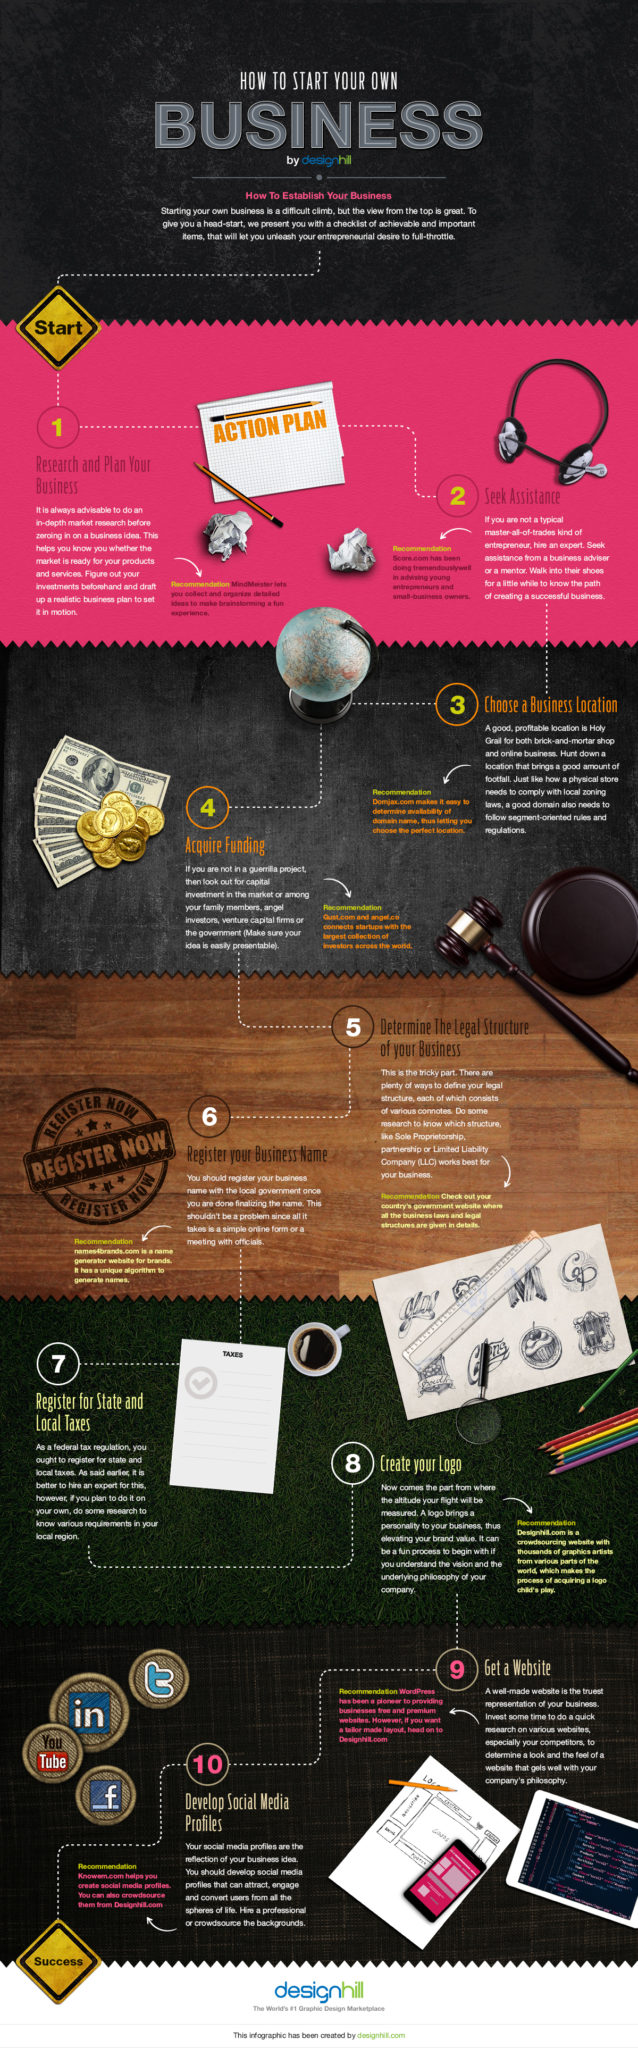 How To Start Your Own Business #infographic #Business #Own Business #How to